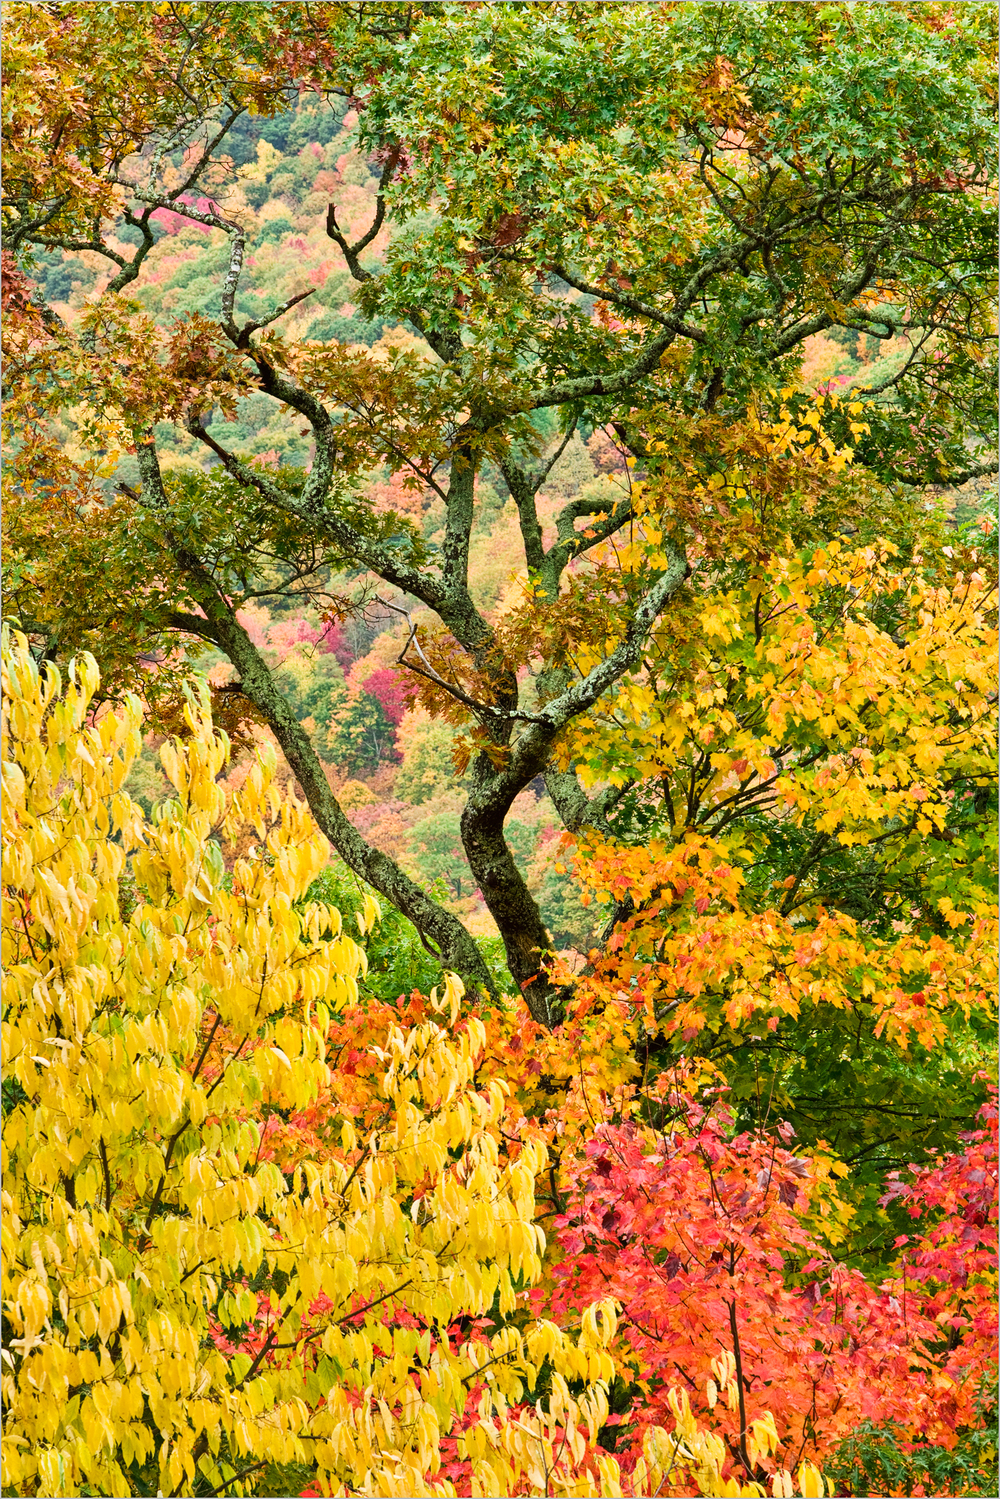 Fall foliage on display in the Great Smoky Mountains National Park.